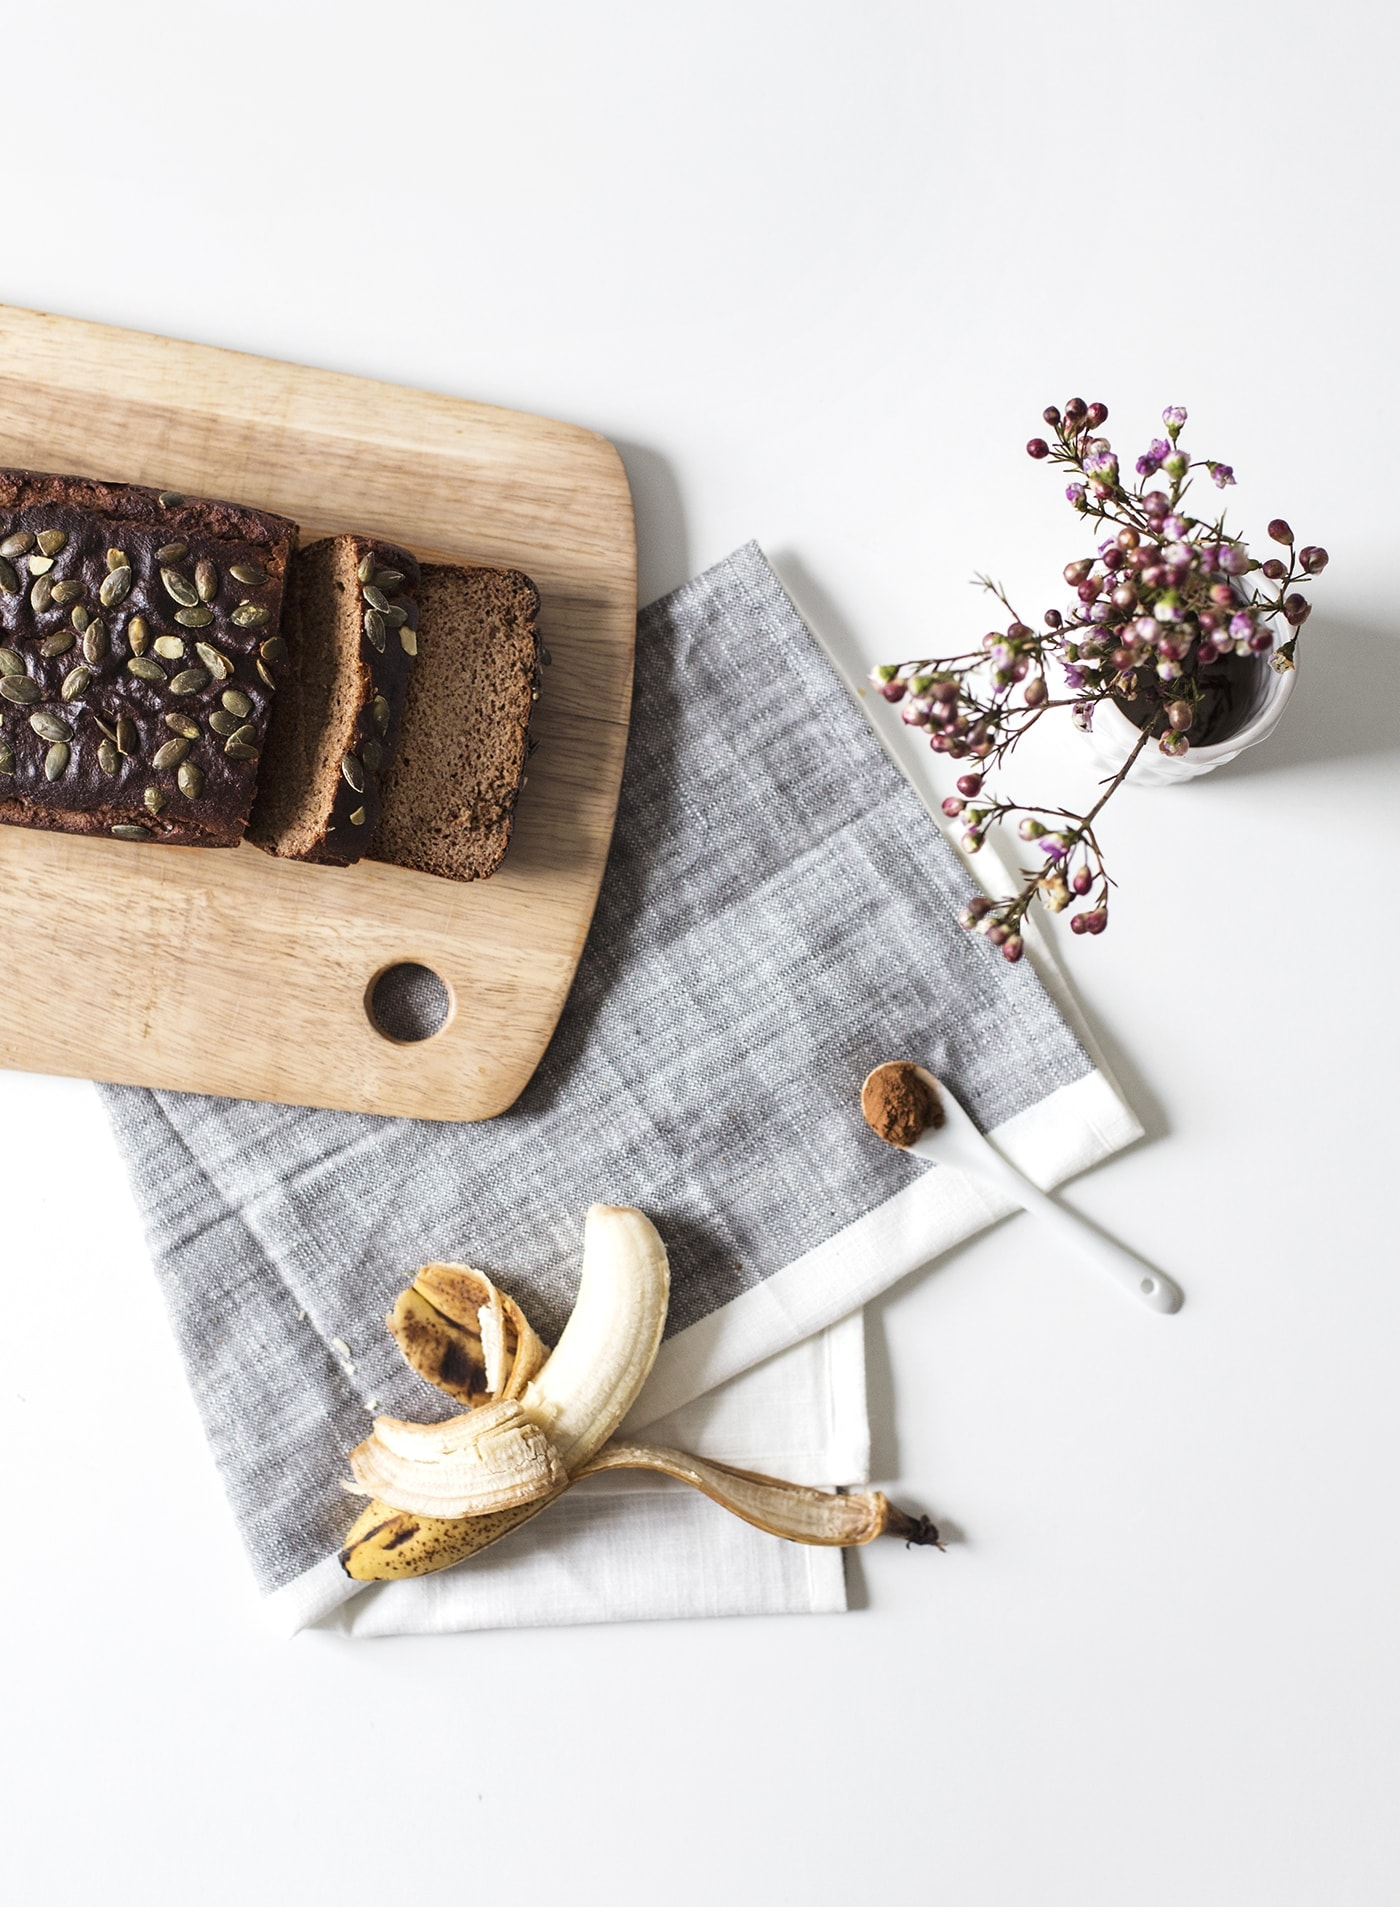 paleo seeded banana loaf recipe | grain free baking | gluten free